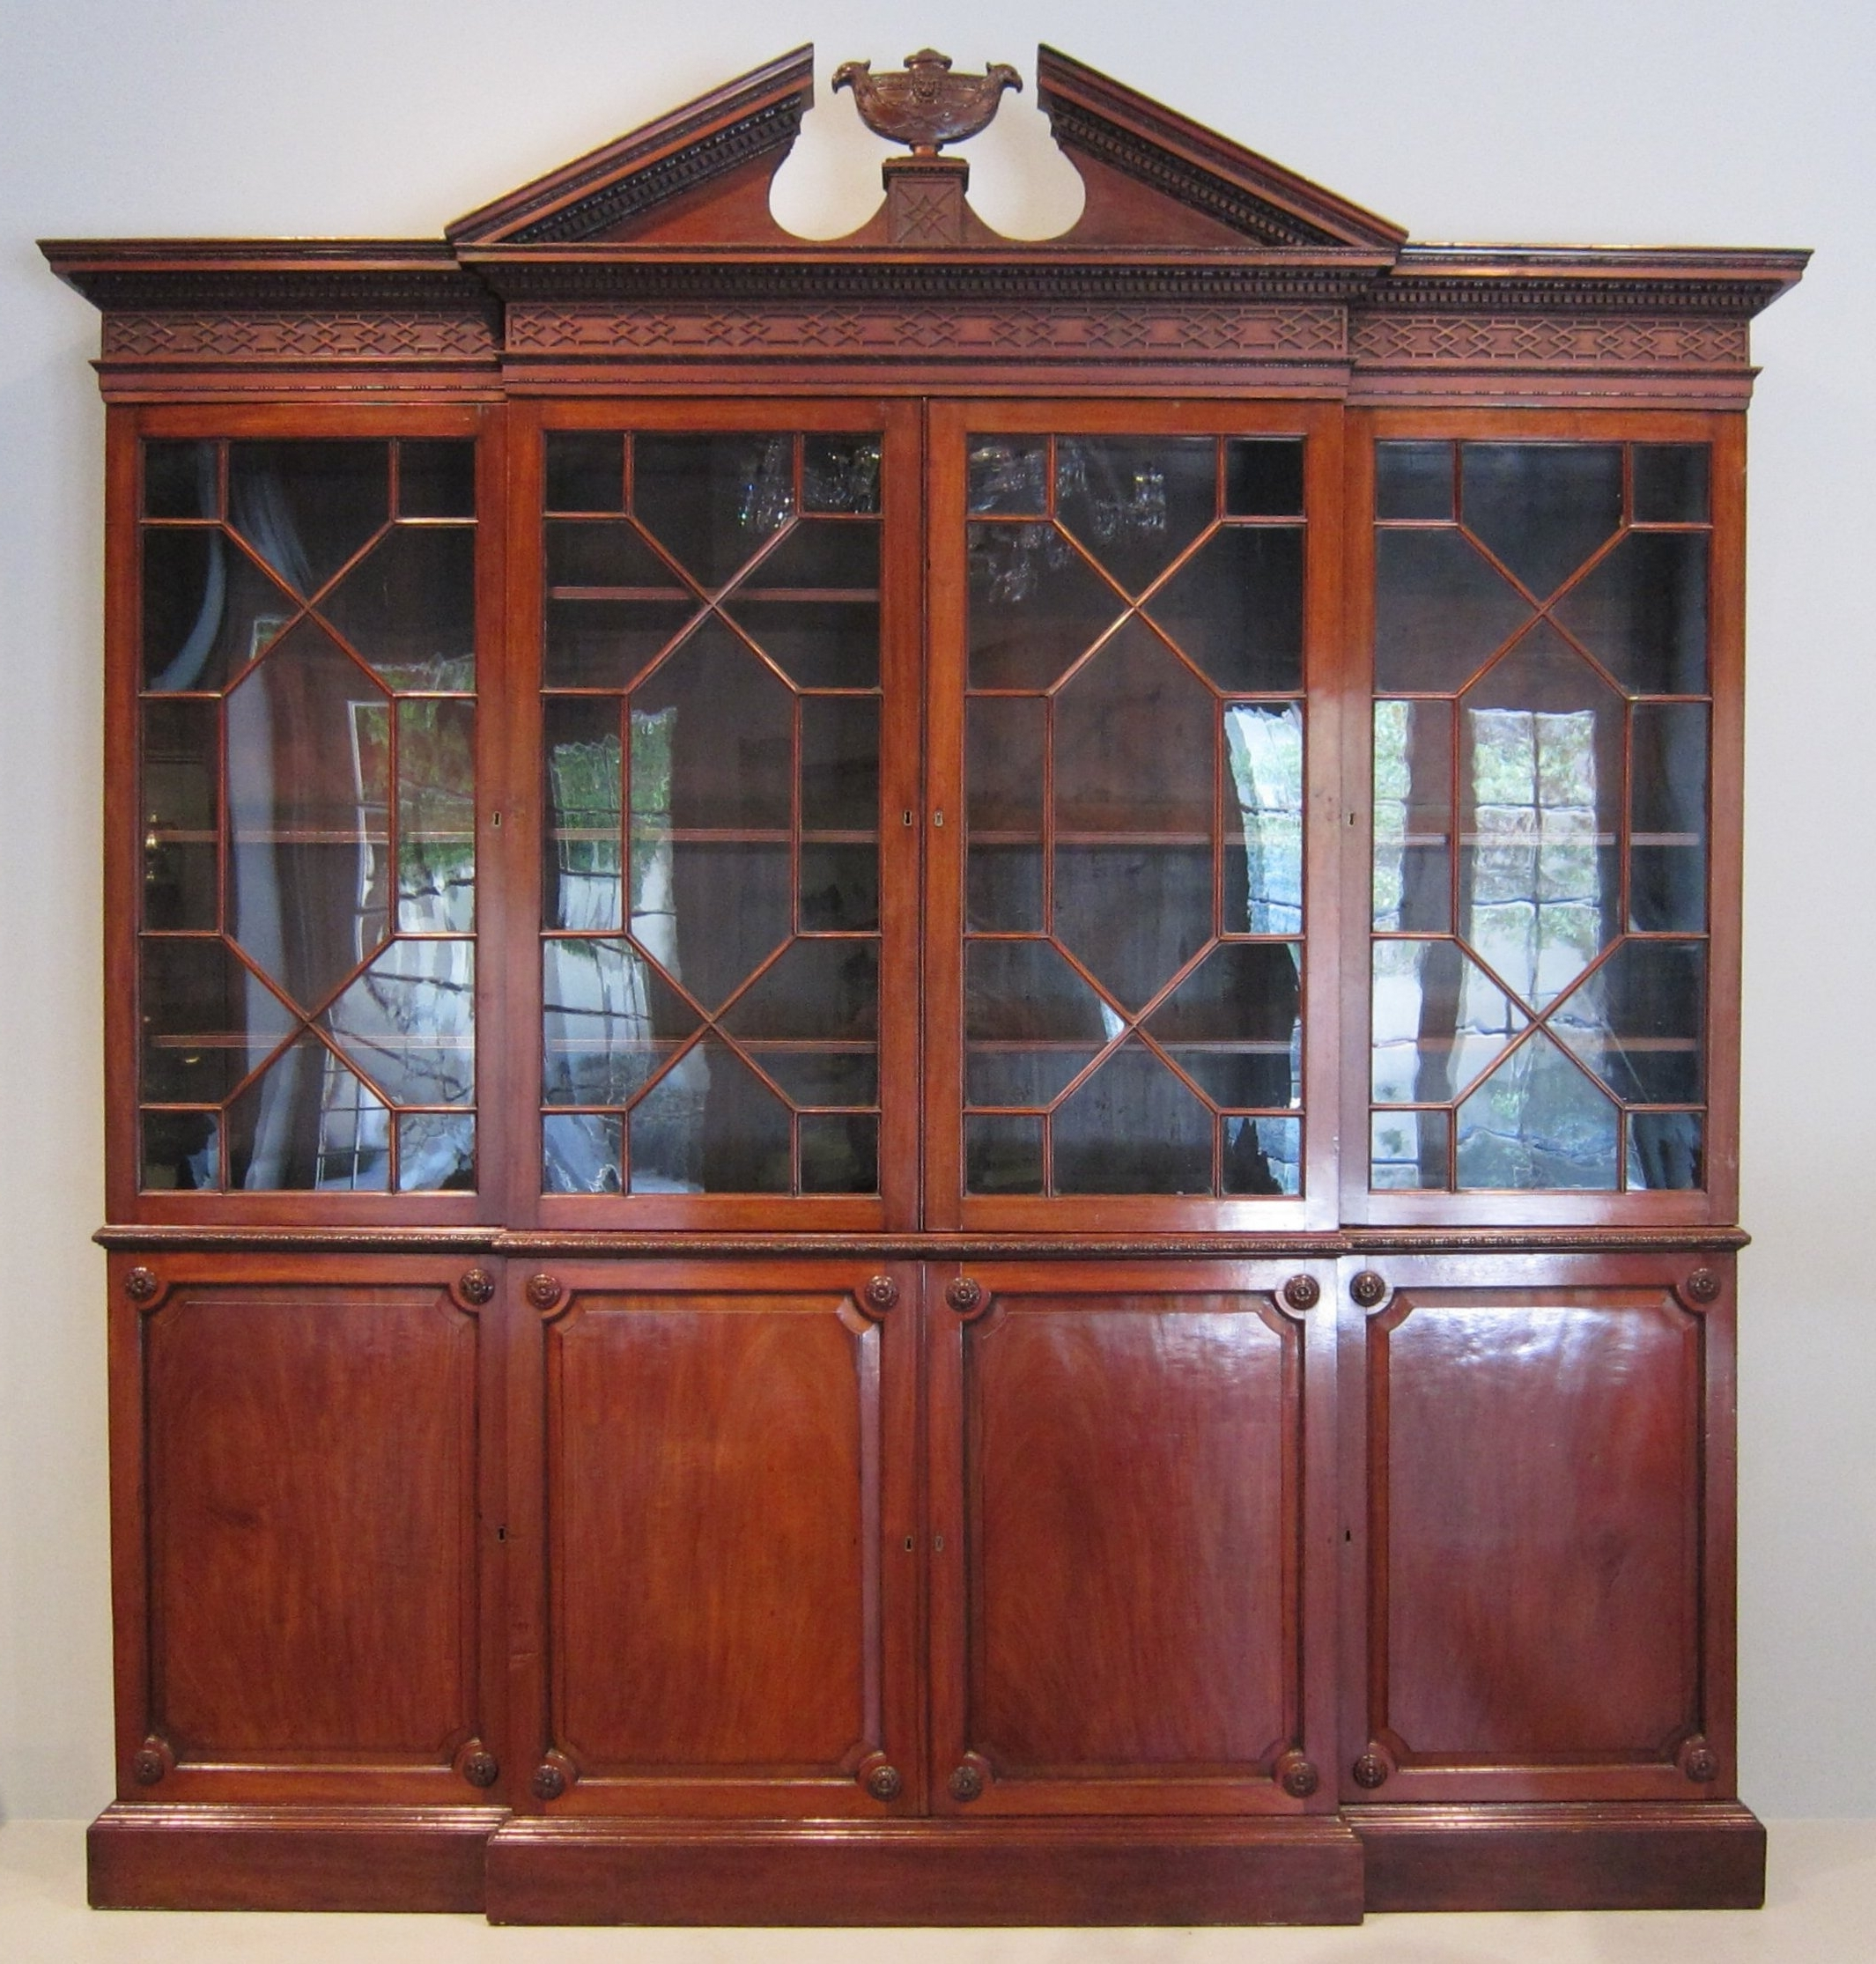 File:wla Haa Breakfront Bookcase After Thomas Chippendale Regarding Well Known Break Front Bookcases (View 9 of 15)